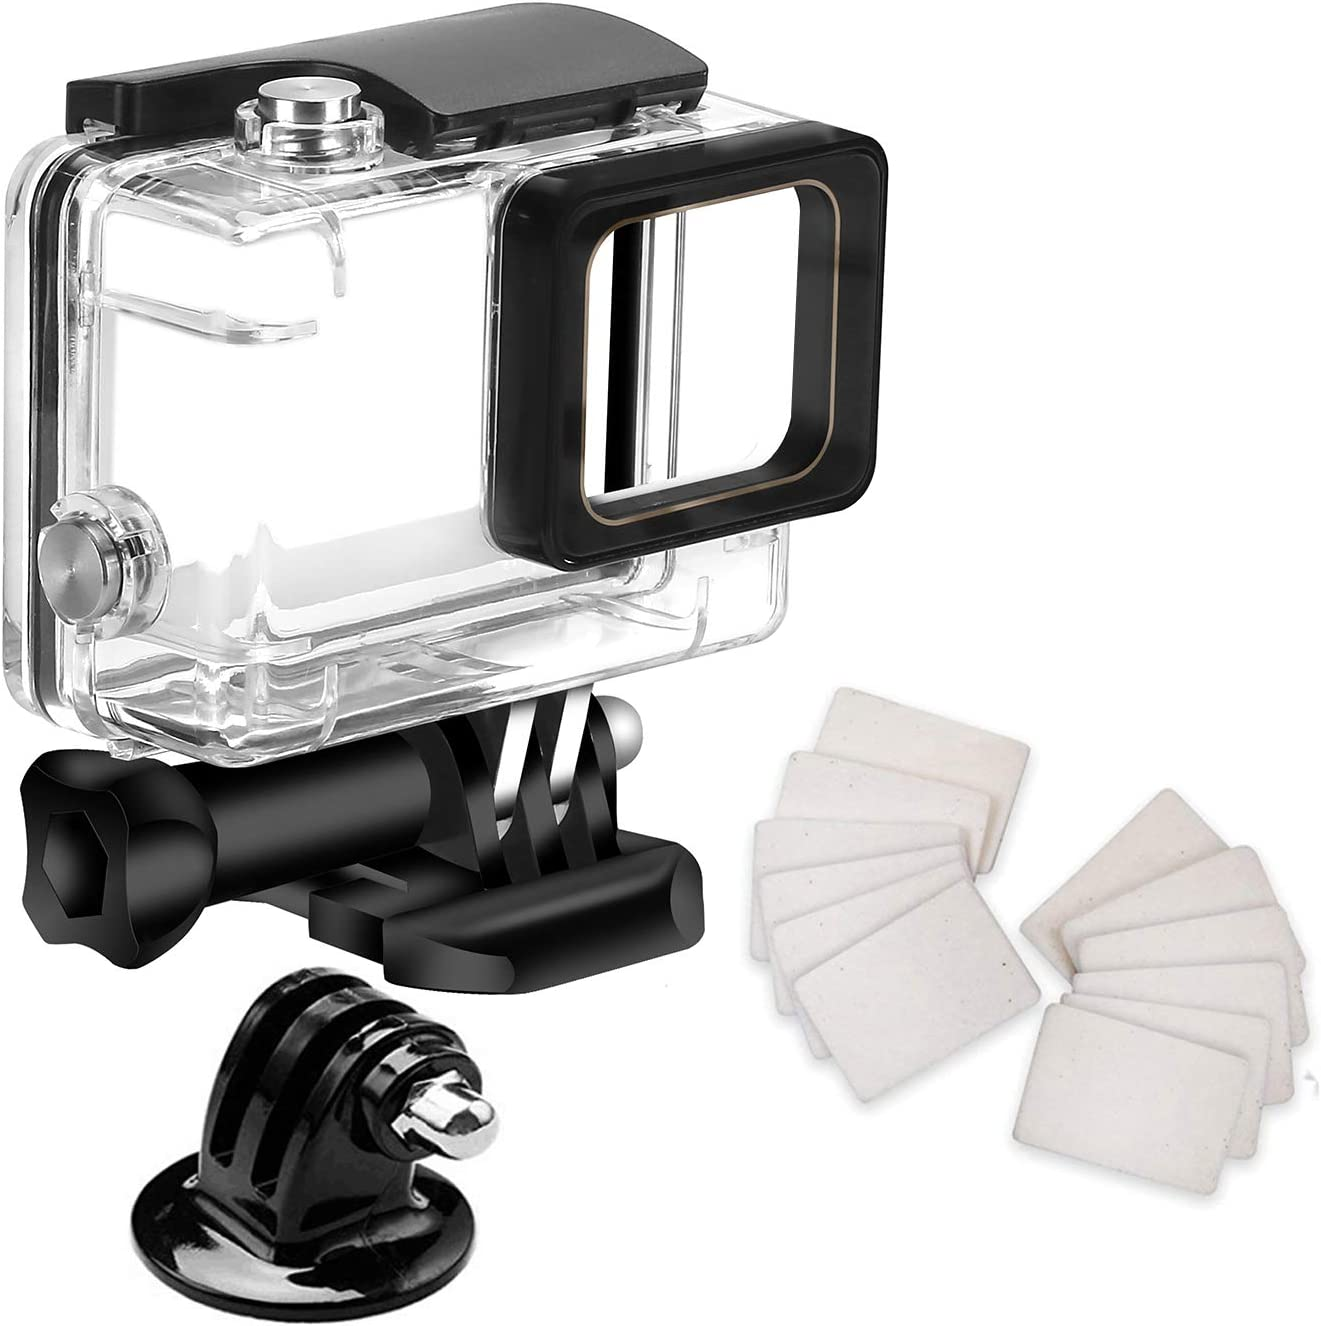 Waterproof Housing Case for Gopro Hero7 Hero 6 Hero 5 Hero 2018 Black, with Anti Fog Inserts Accessories Suitable for Underwater Diving Photography 45M Protective Shell